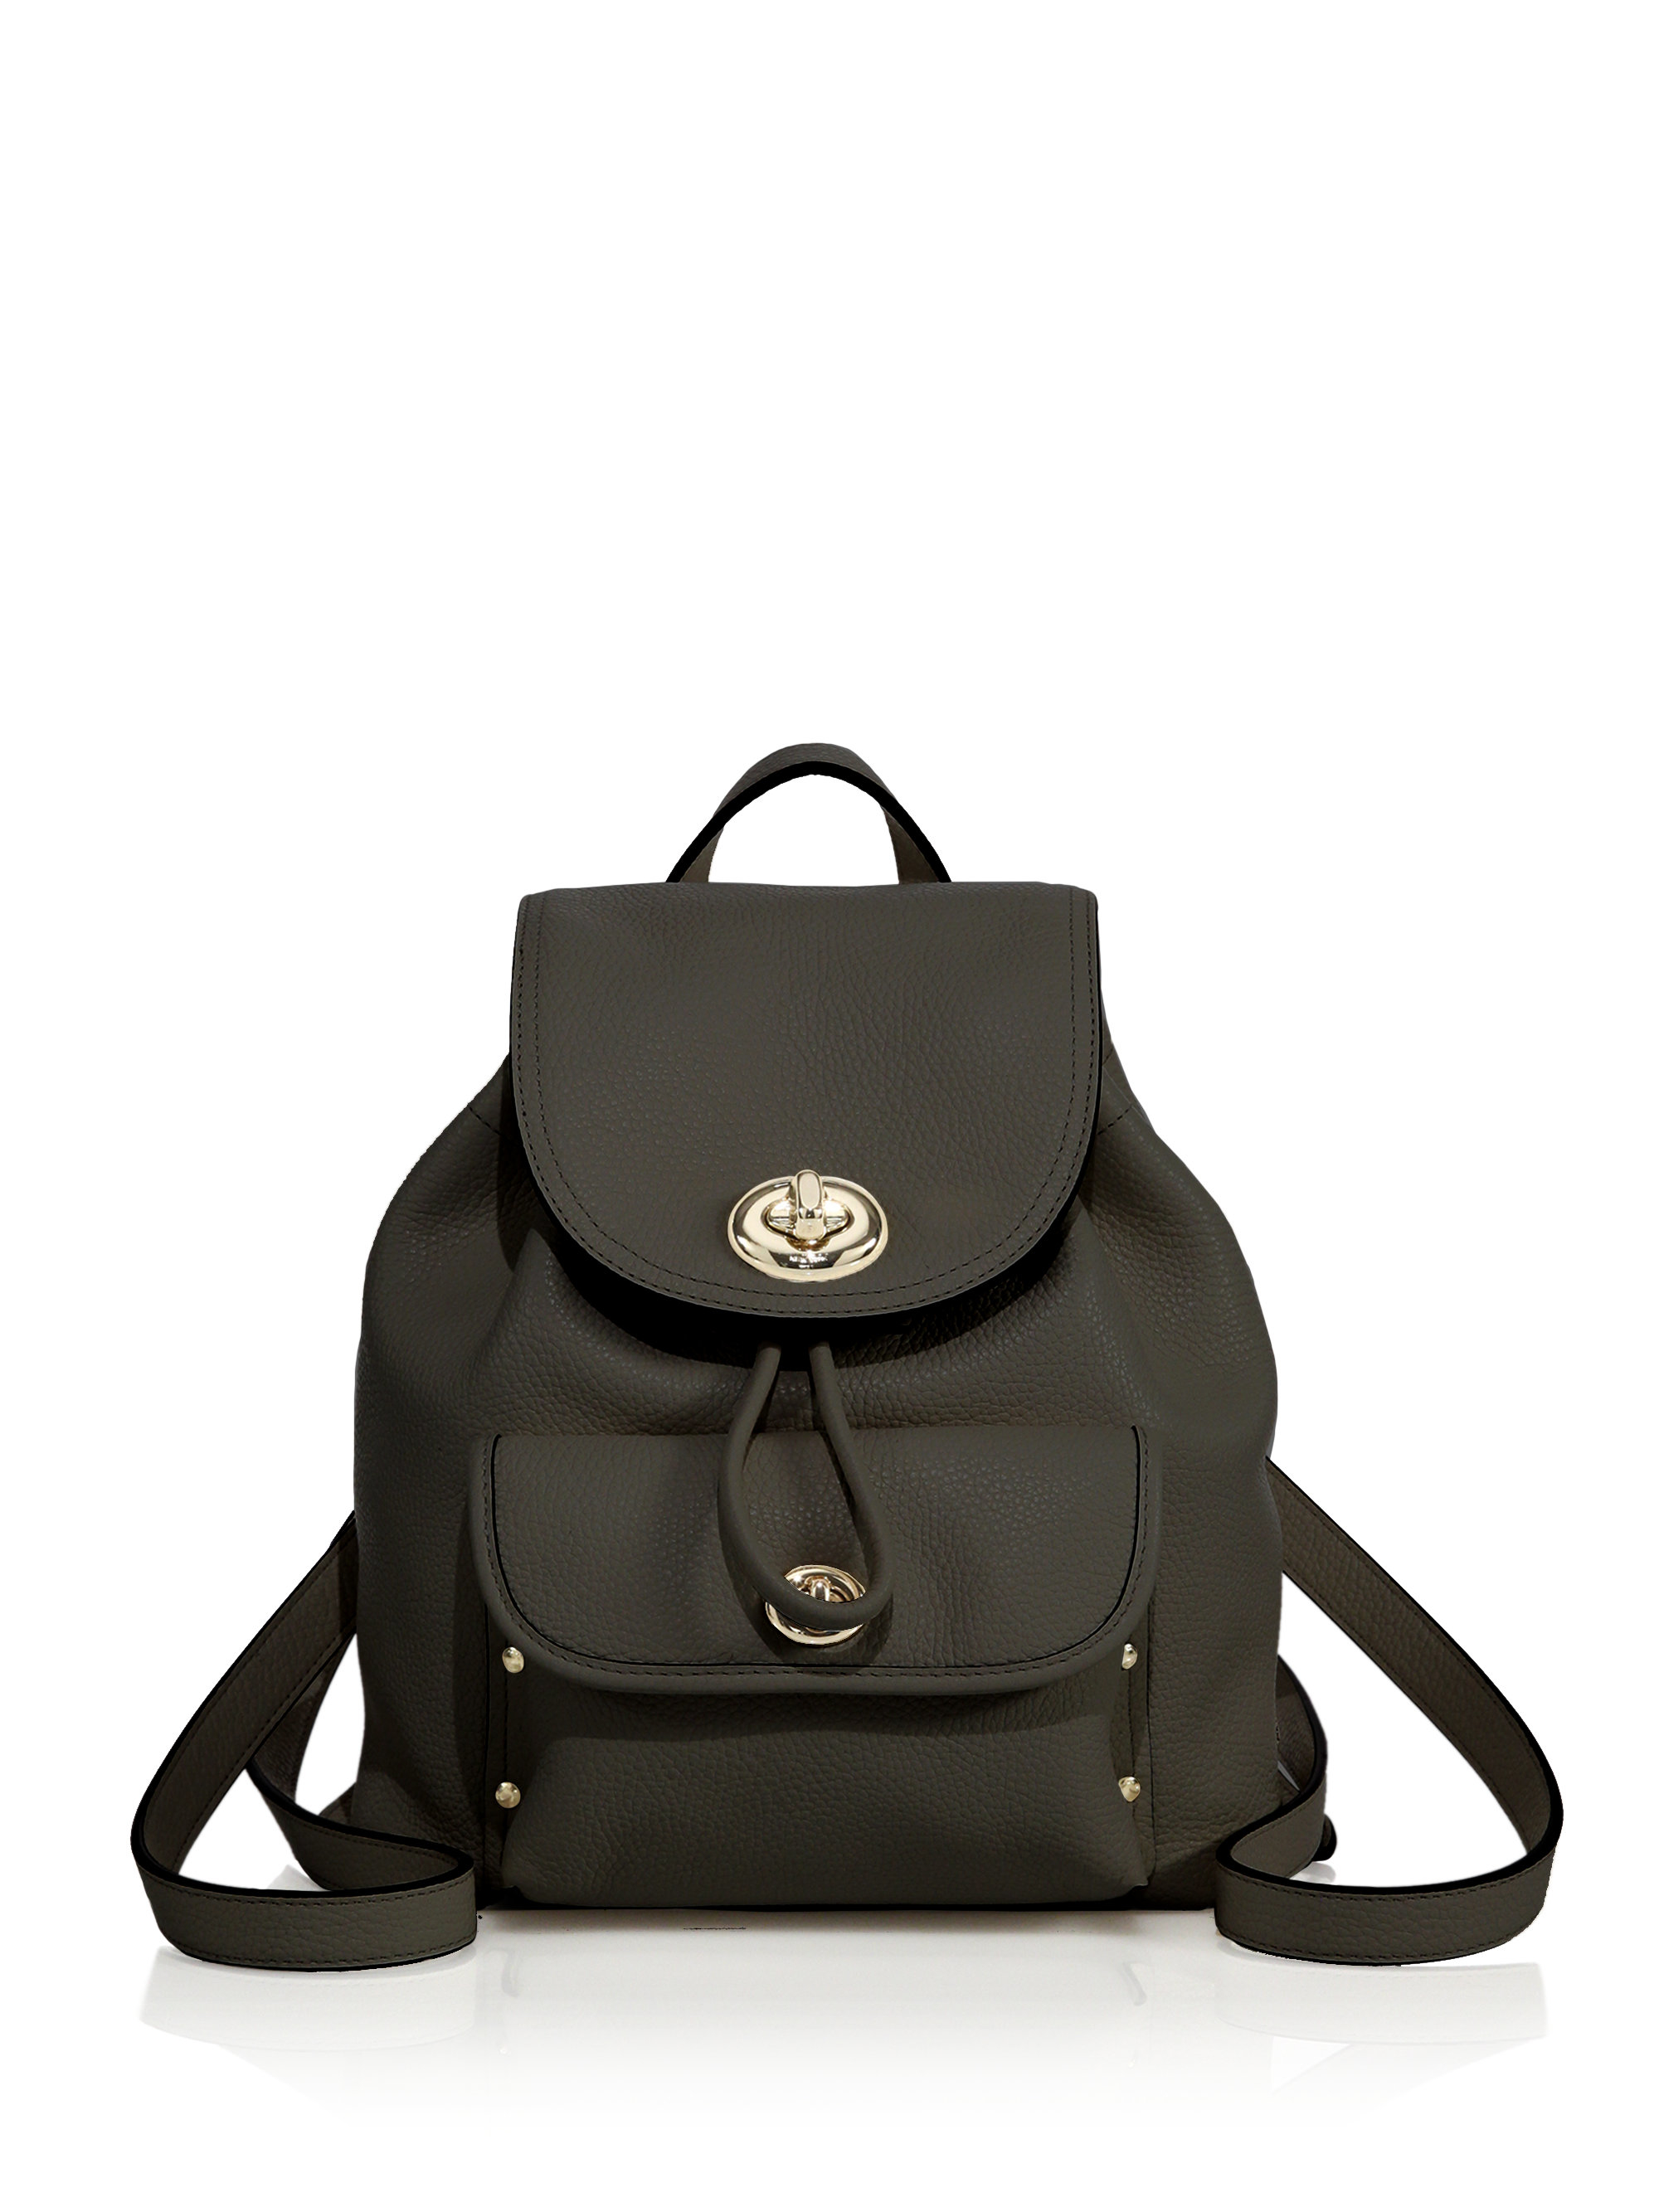 Coach Mini Leather Turnlock Backpack in Black | Lyst